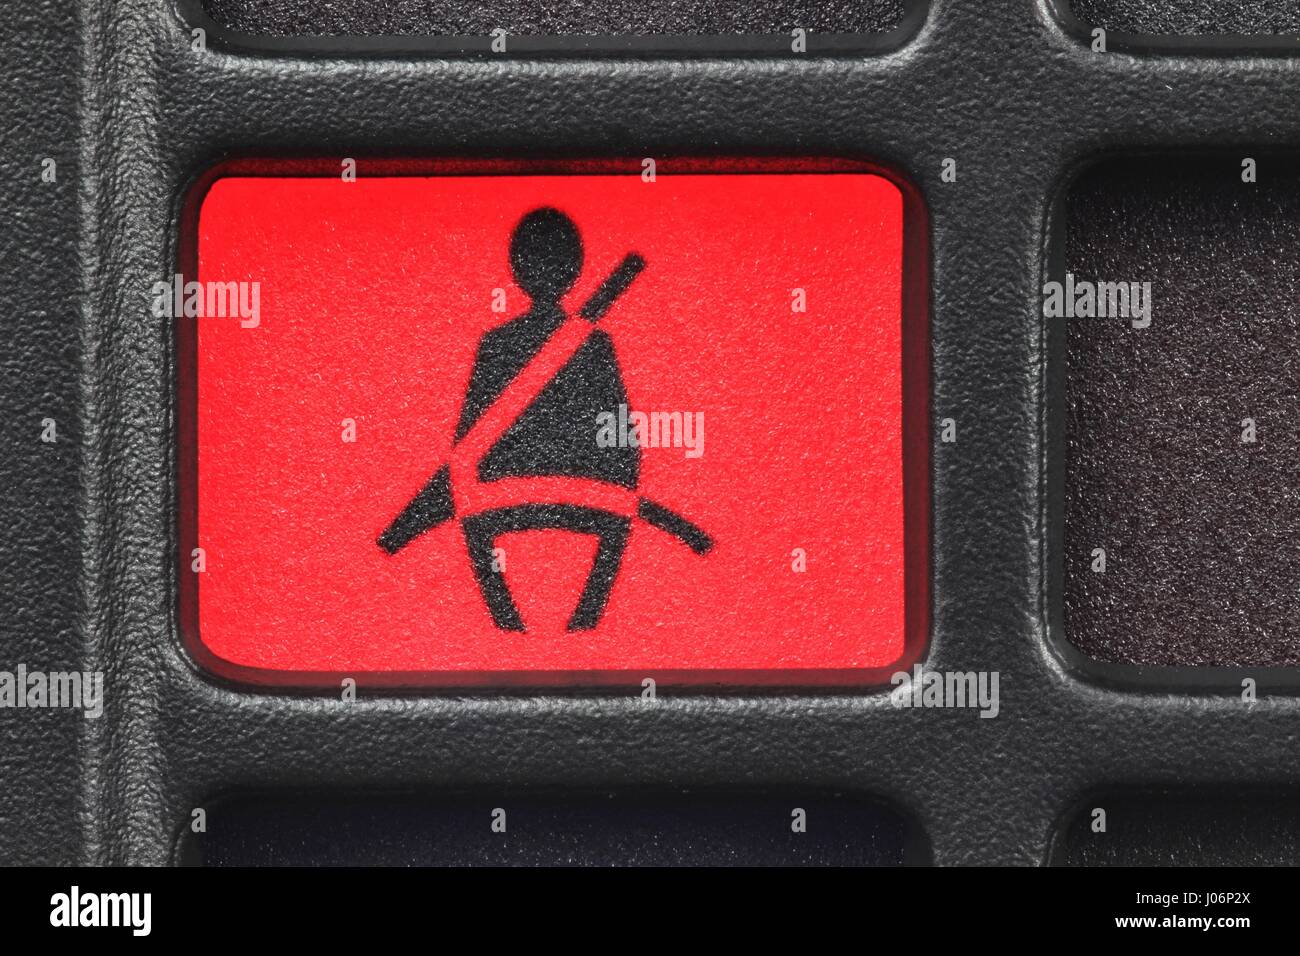 Seatbelt Warning Light In Car Dashboard Stock Photo Royalty Free - Car image sign of dashboarddashboard warning lights stock images royaltyfree images